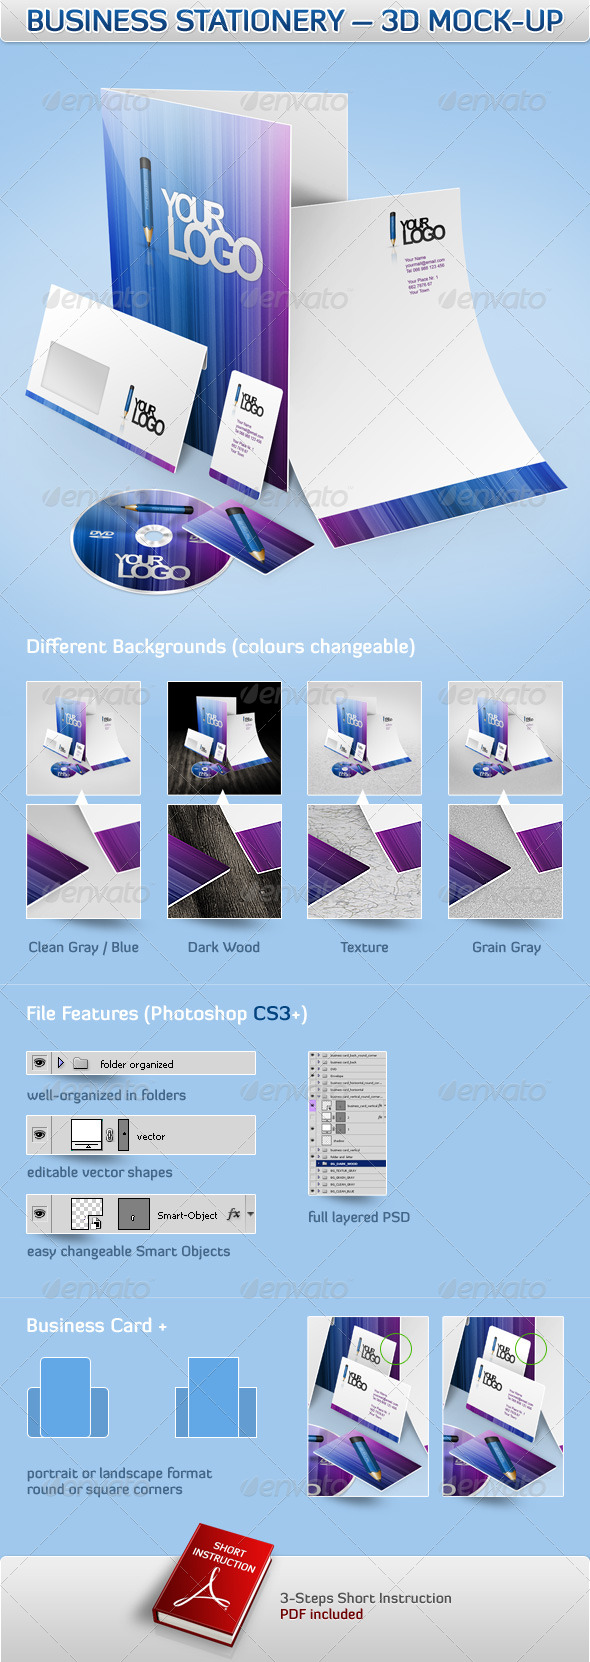 GraphicRiver Business Stationery 3D Mock-Up 161908